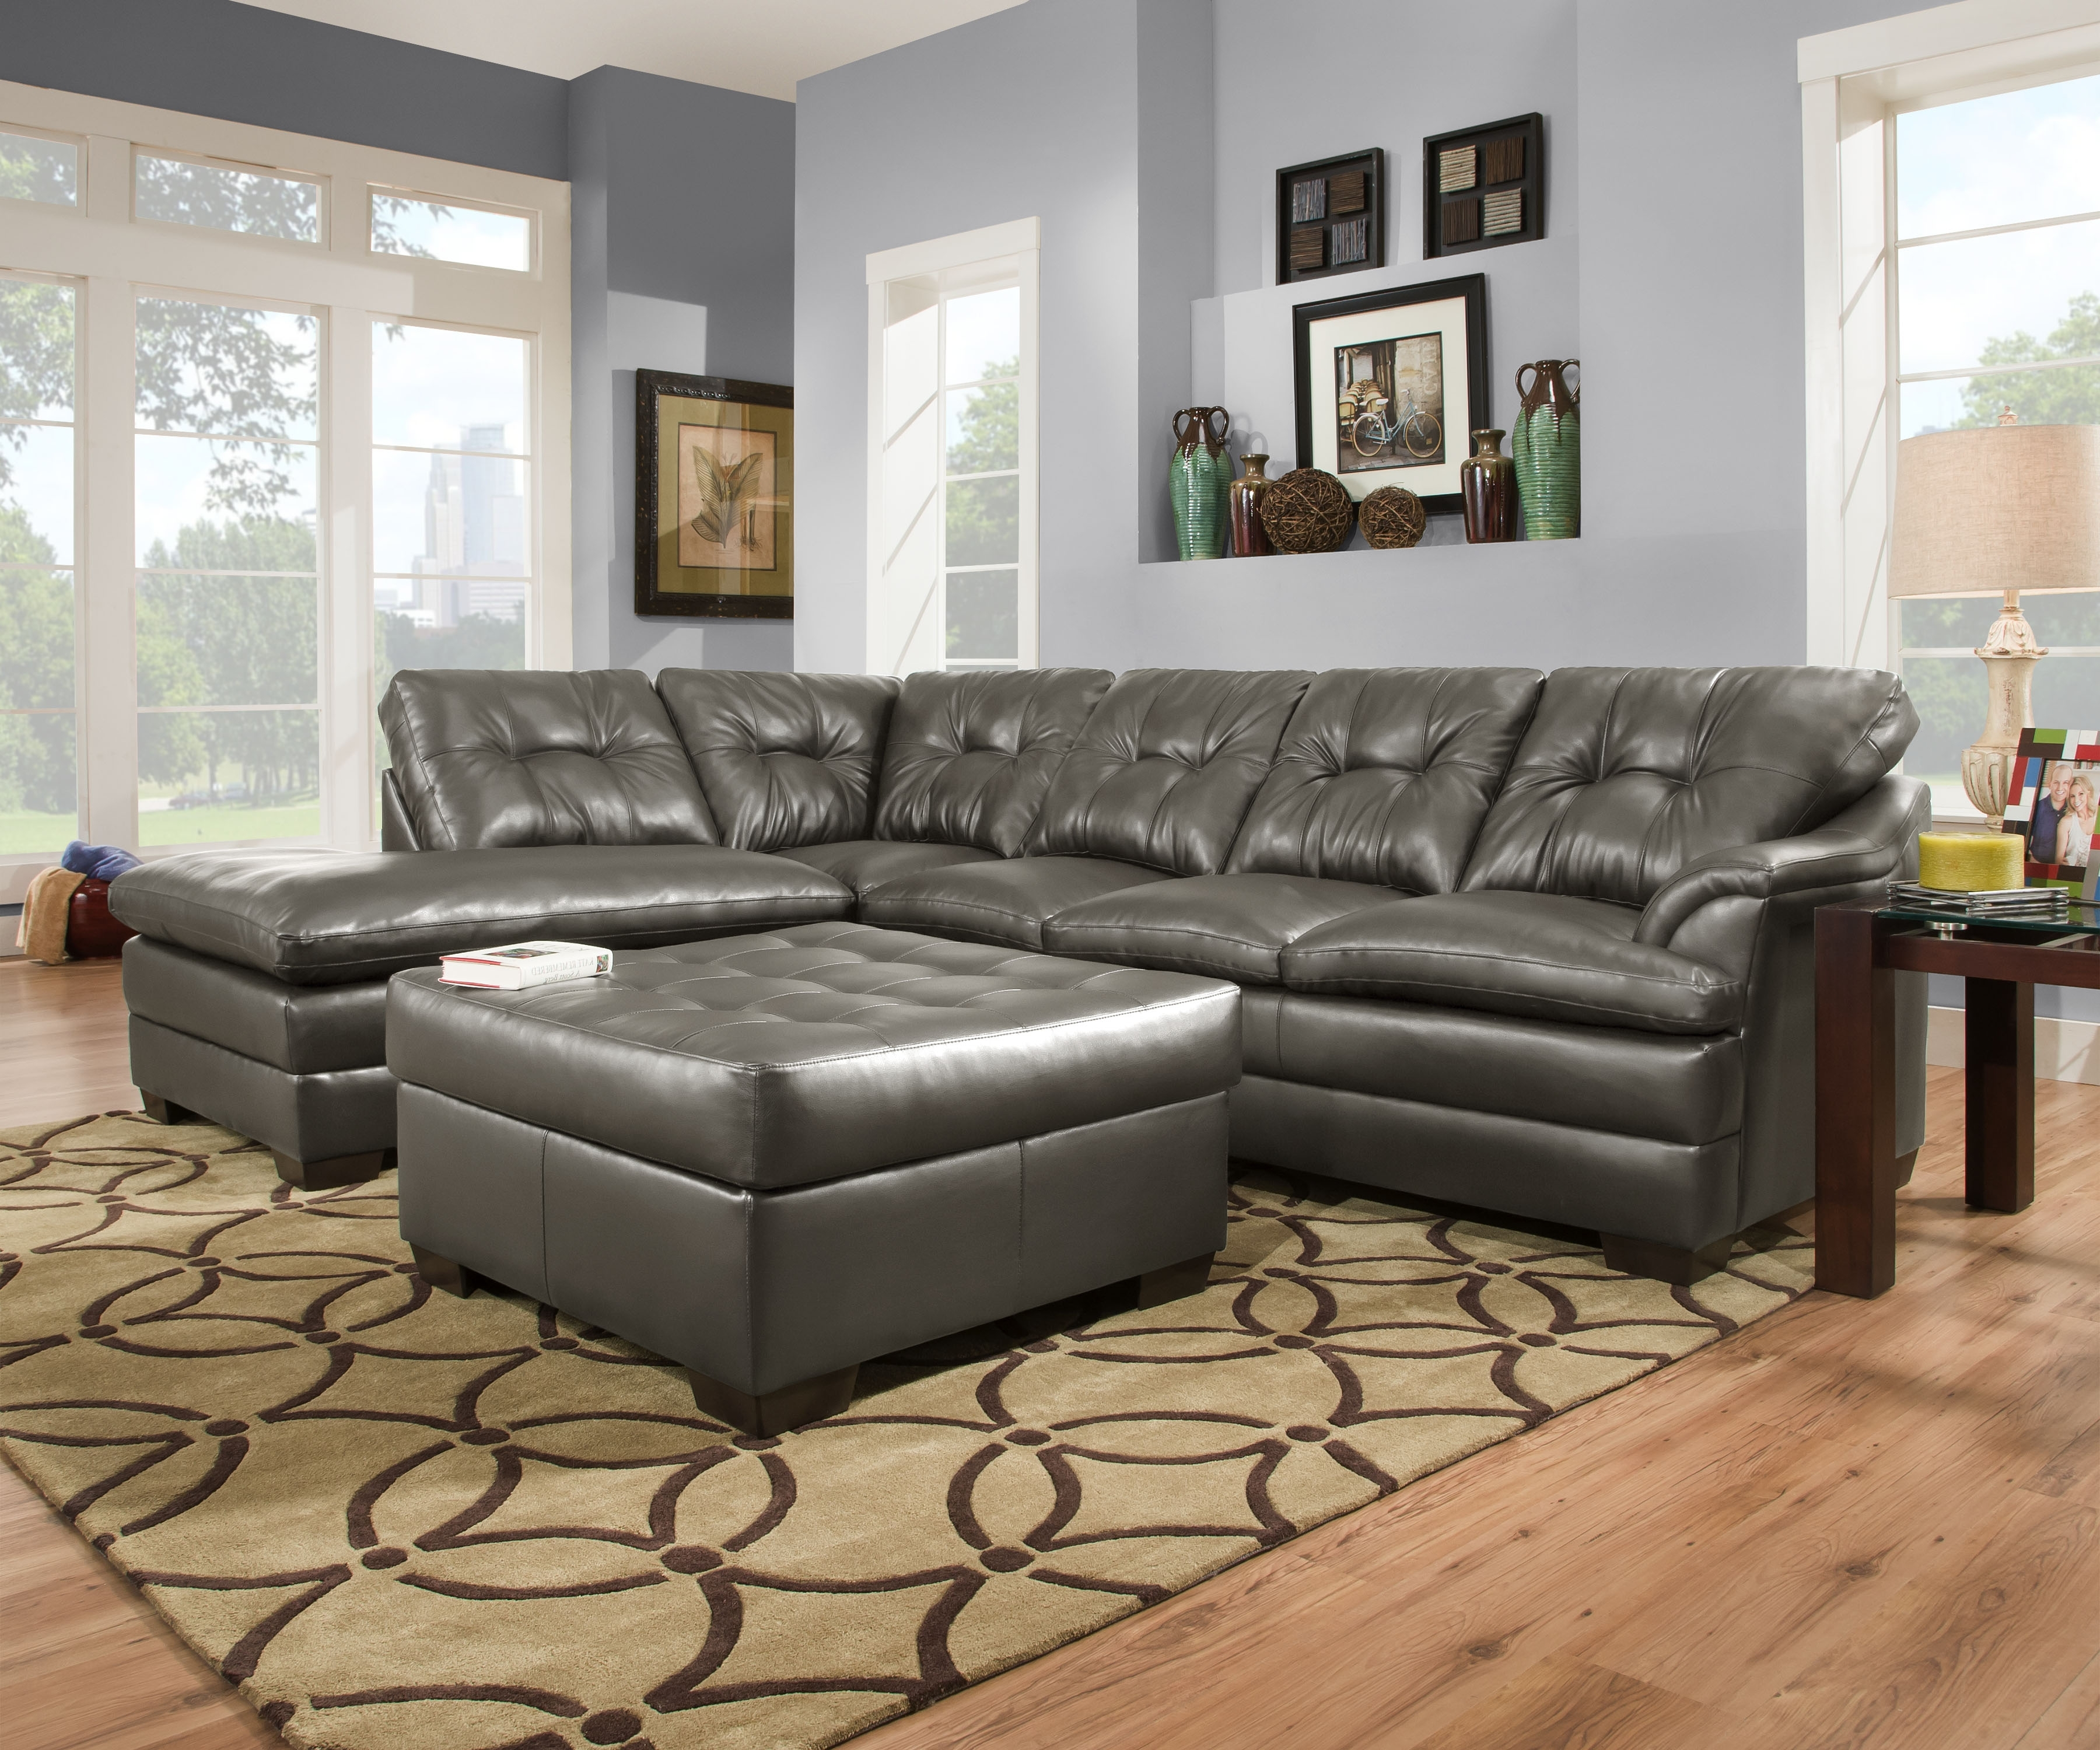 Simmons Sectional Sofas Within Latest Designssimmons – Simmons Apollo Charcoal 2pc Sectional (View 17 of 20)